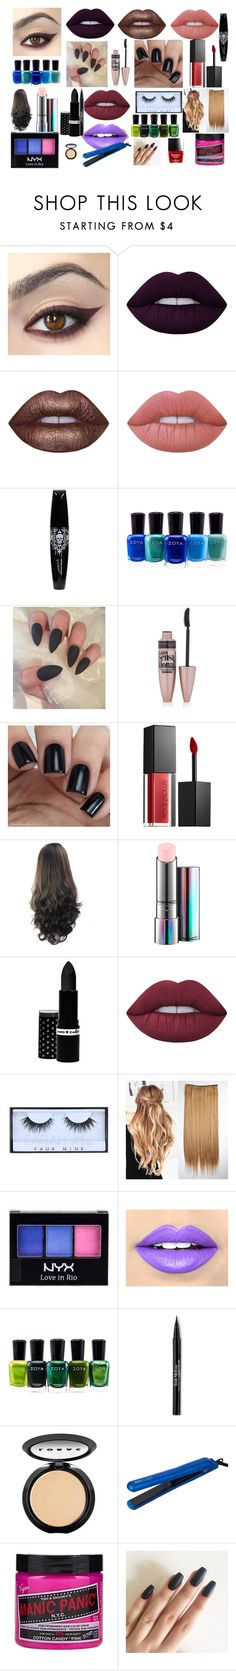 """""""fave beauty products"""" by hopegreen on Polyvore featuring Lime Crime, Zoya, Maybelline, Smashbox, MAC Cosmetics, Hard Candy, Huda Beauty, NYX, Fiebiger and Trish McEvoy"""